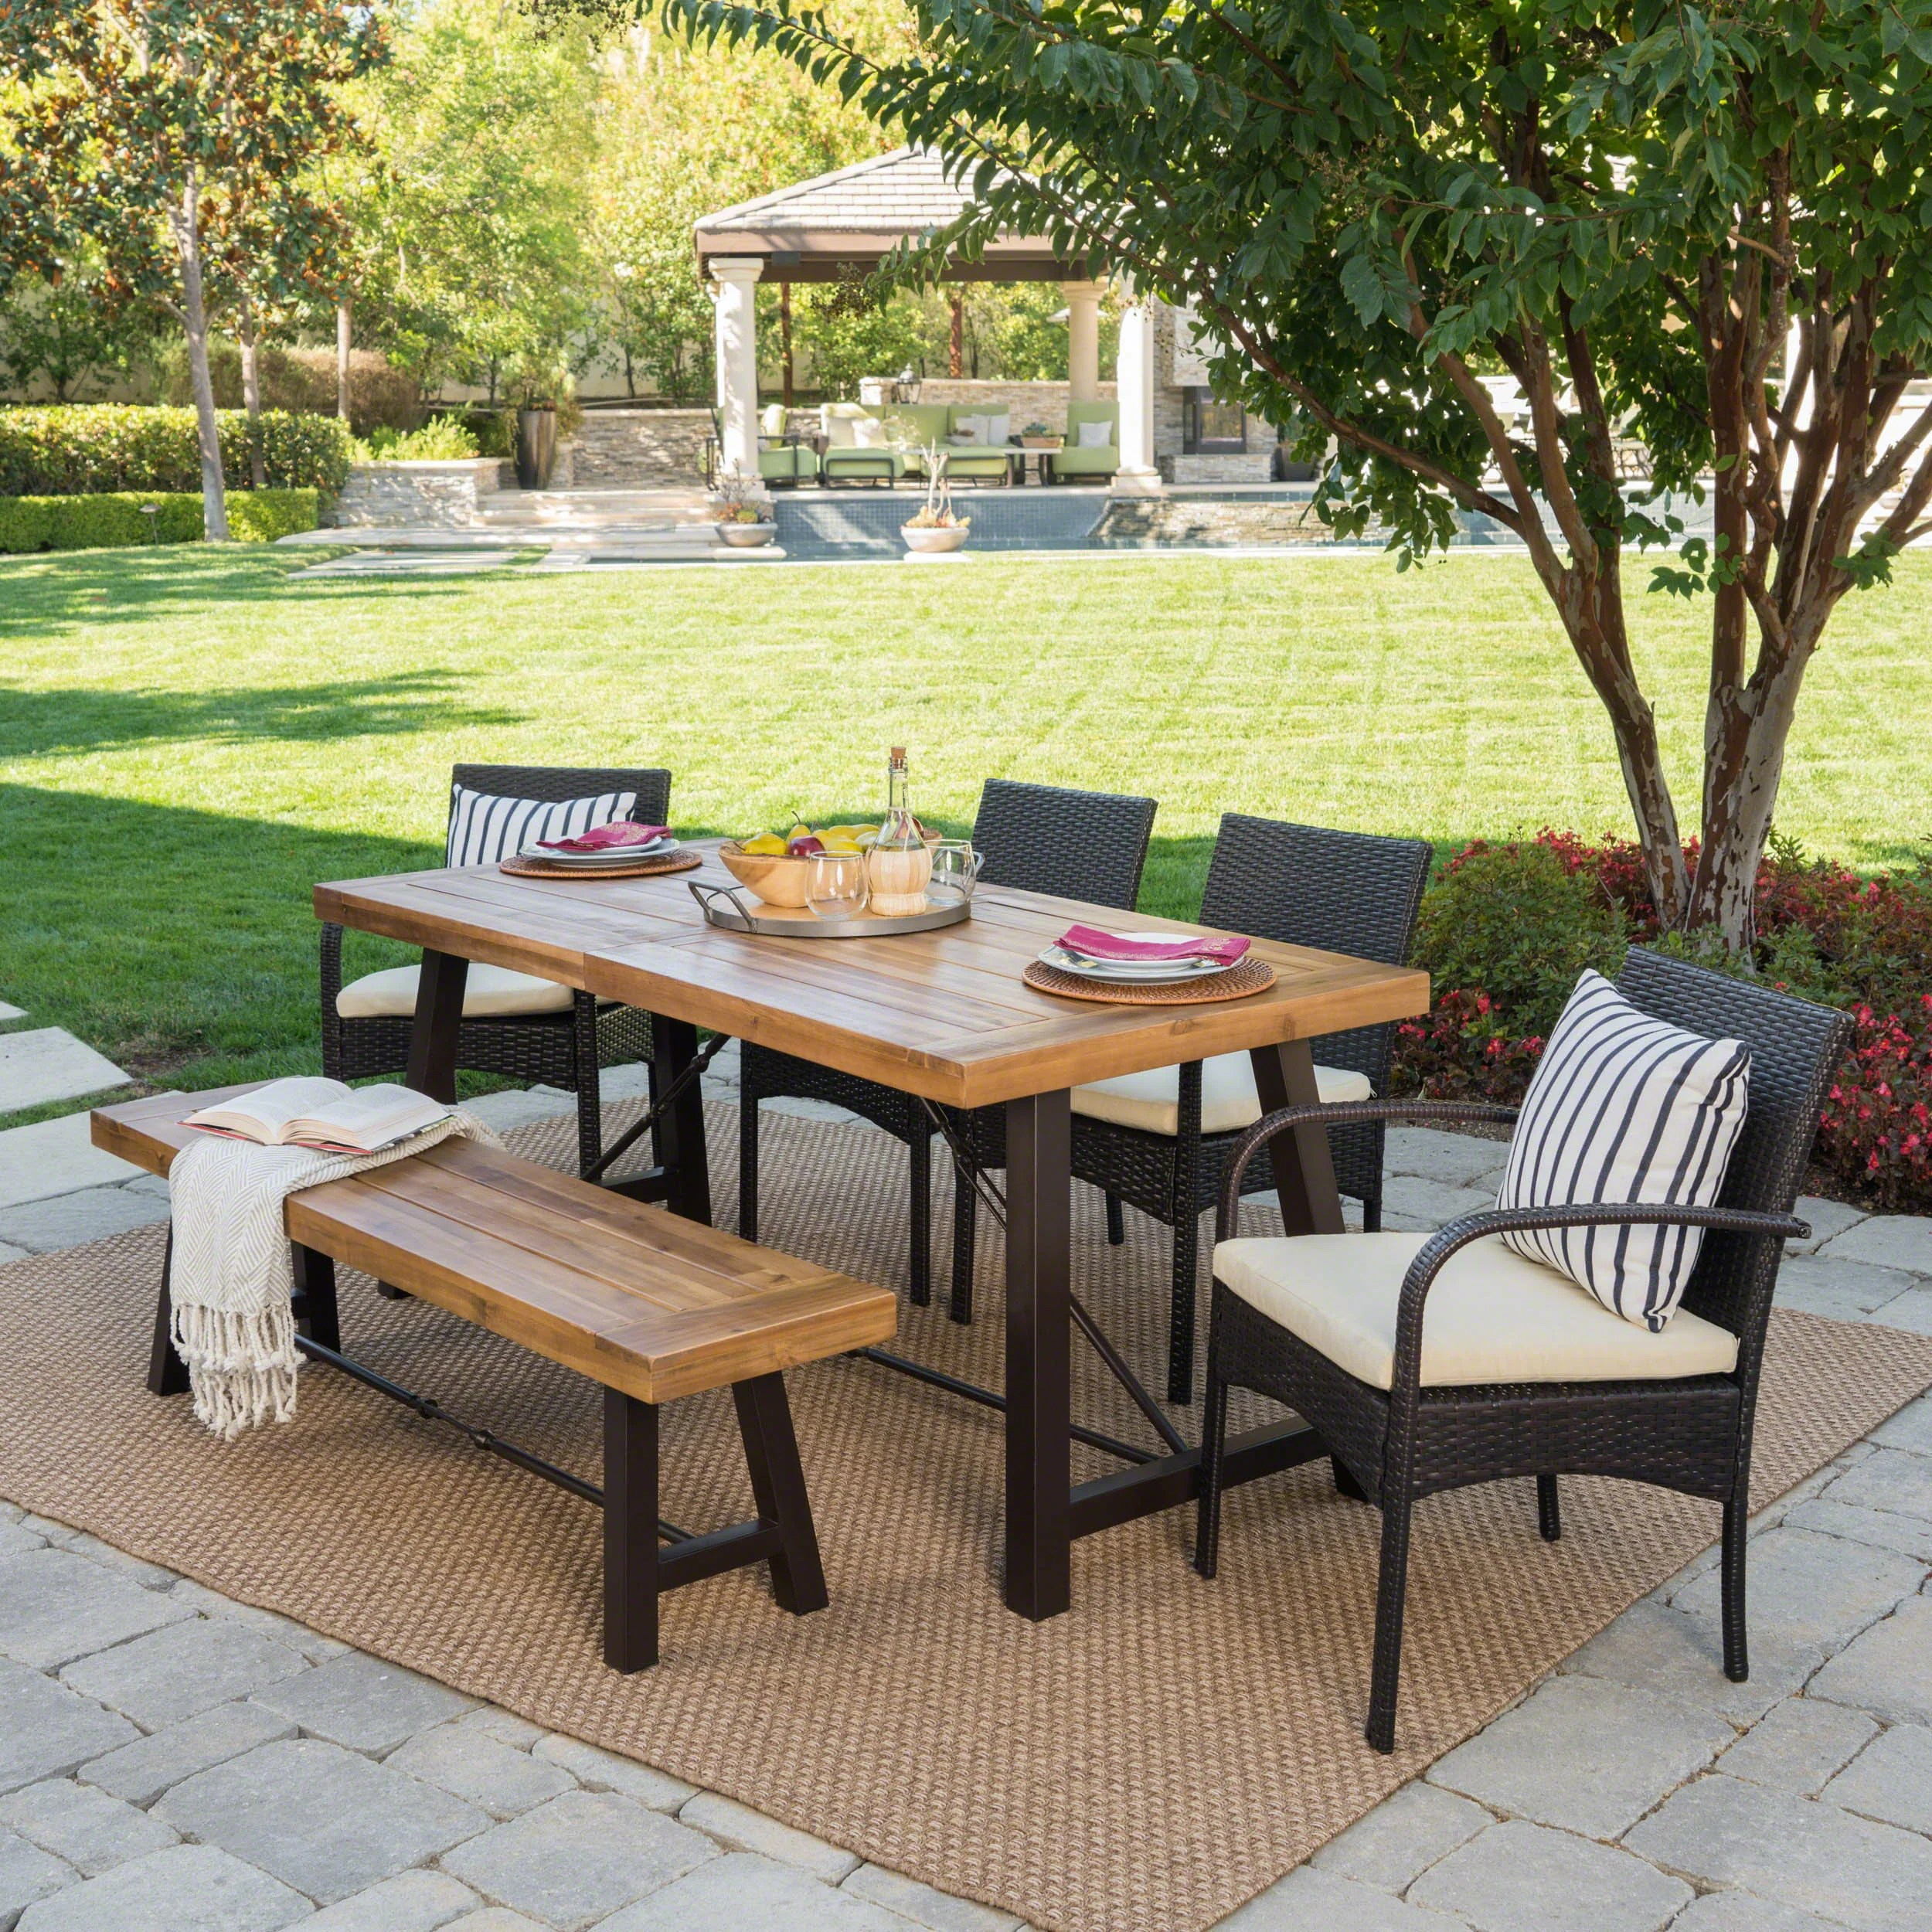 Patio Table Buy Outdoor Dining Sets Online At Overstock Our Best Patio